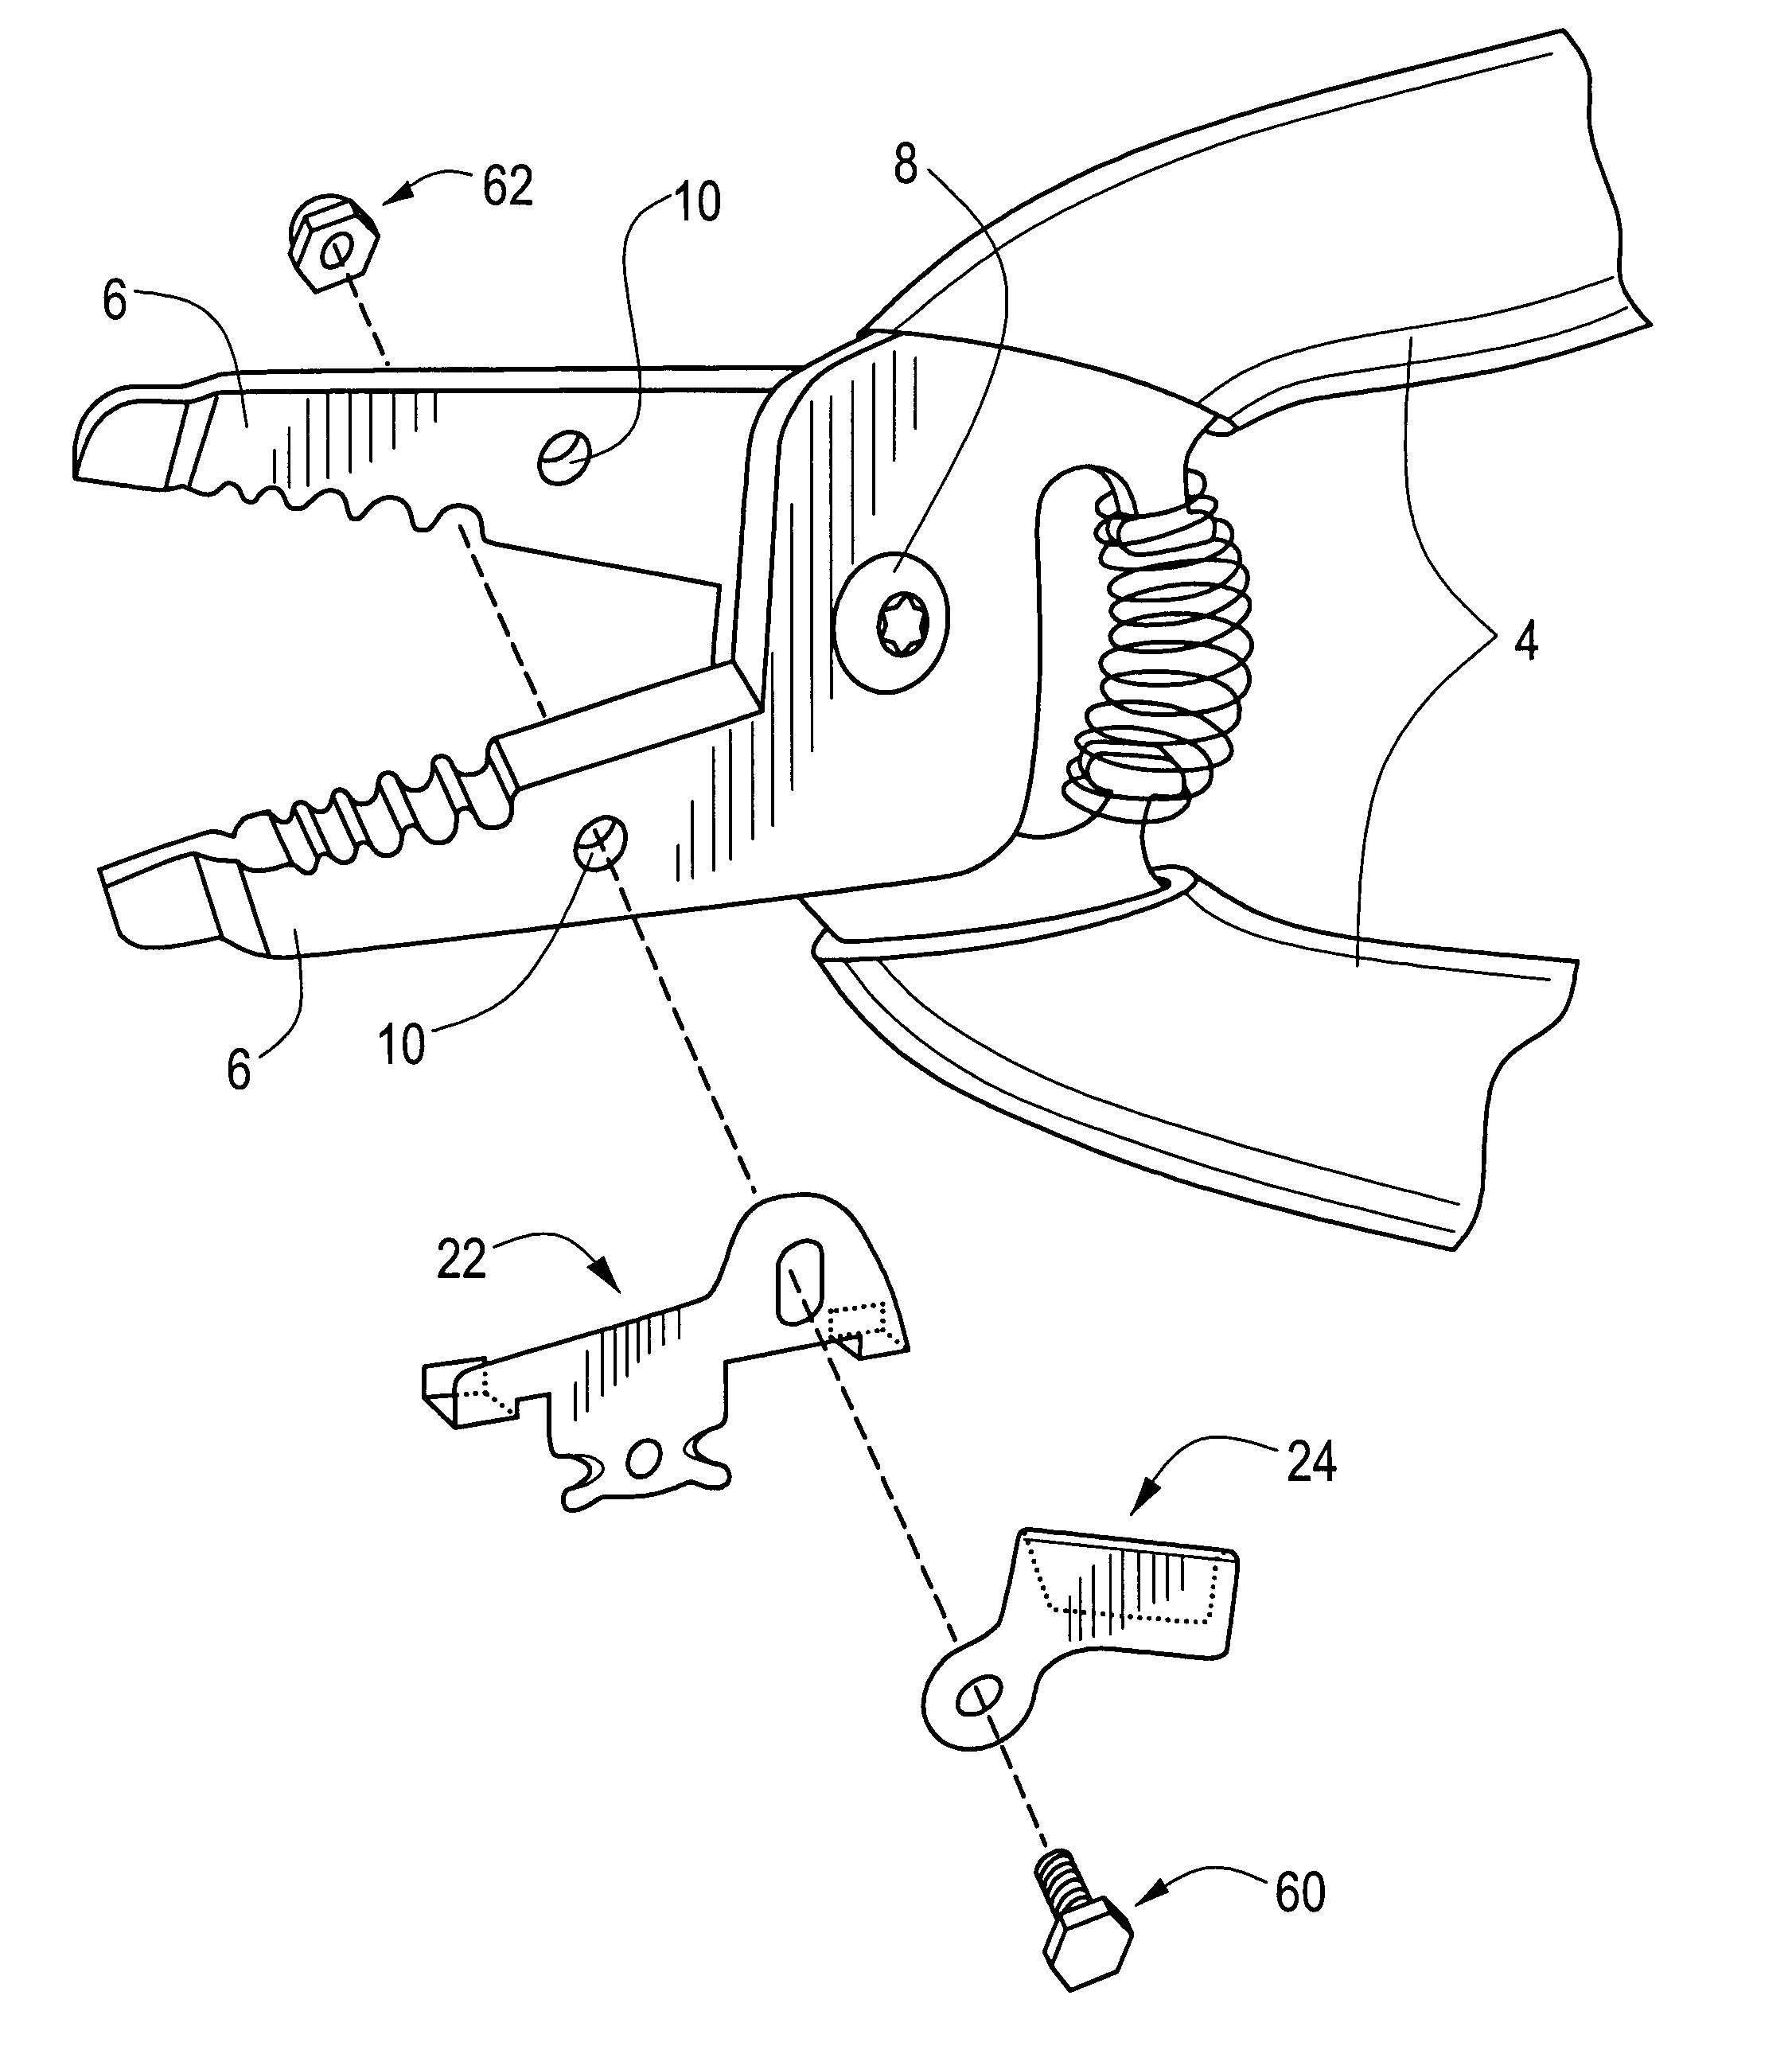 patent us6745473 - cable sheathing slitter for a wire stripper tool